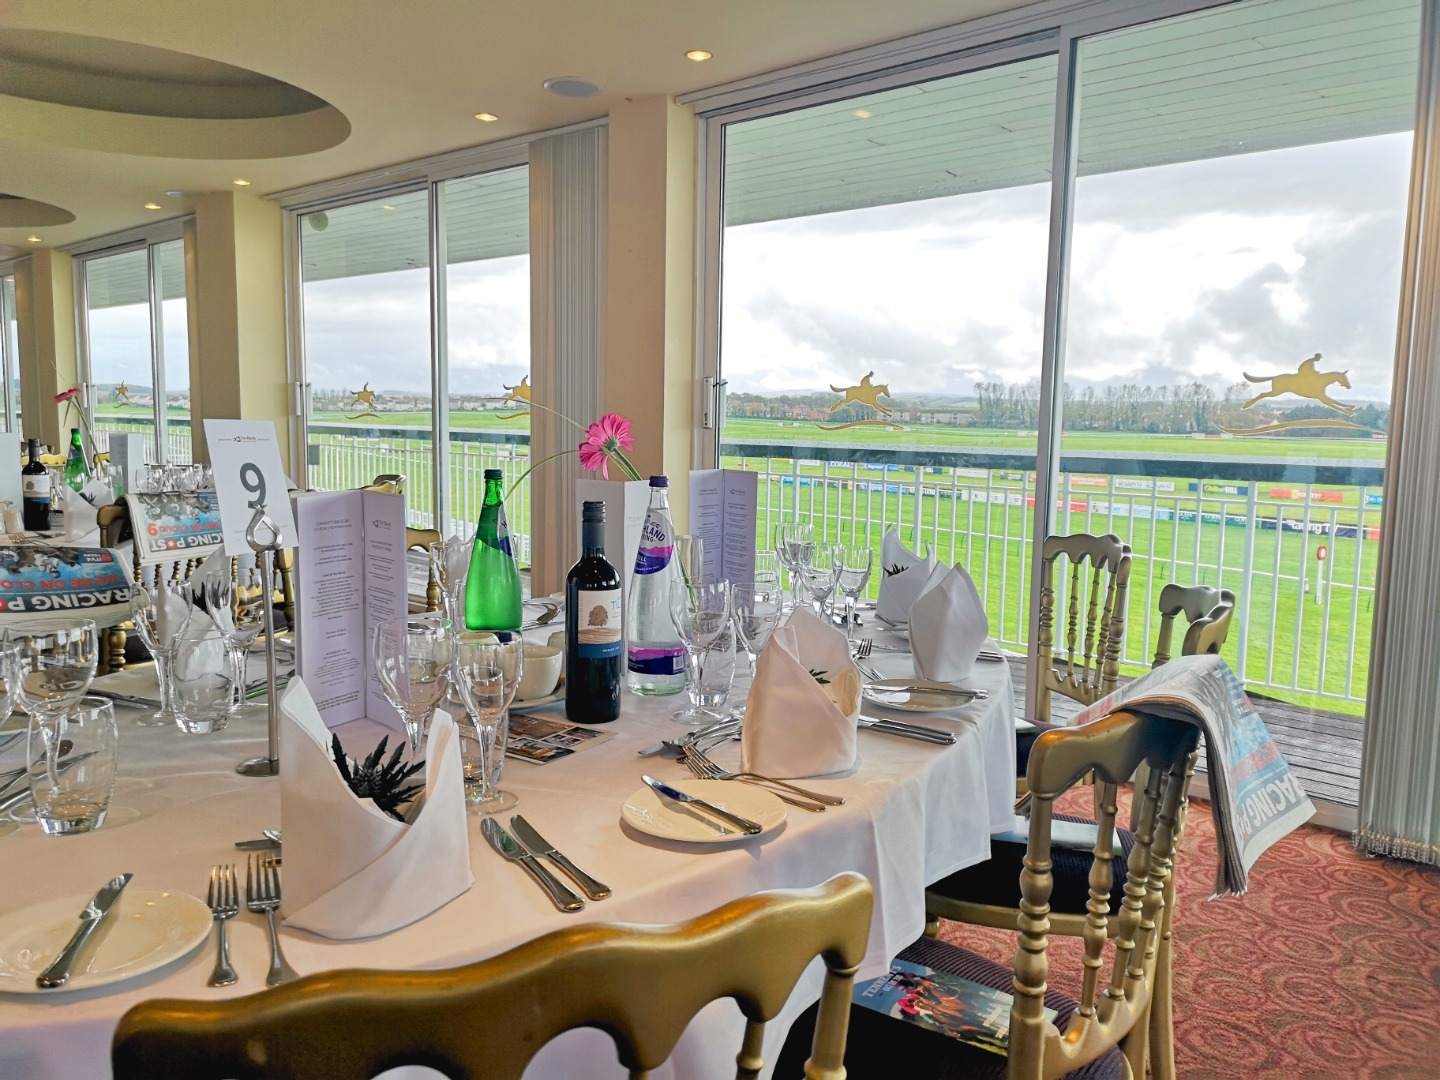 Hospitality at Ayr Racecourse